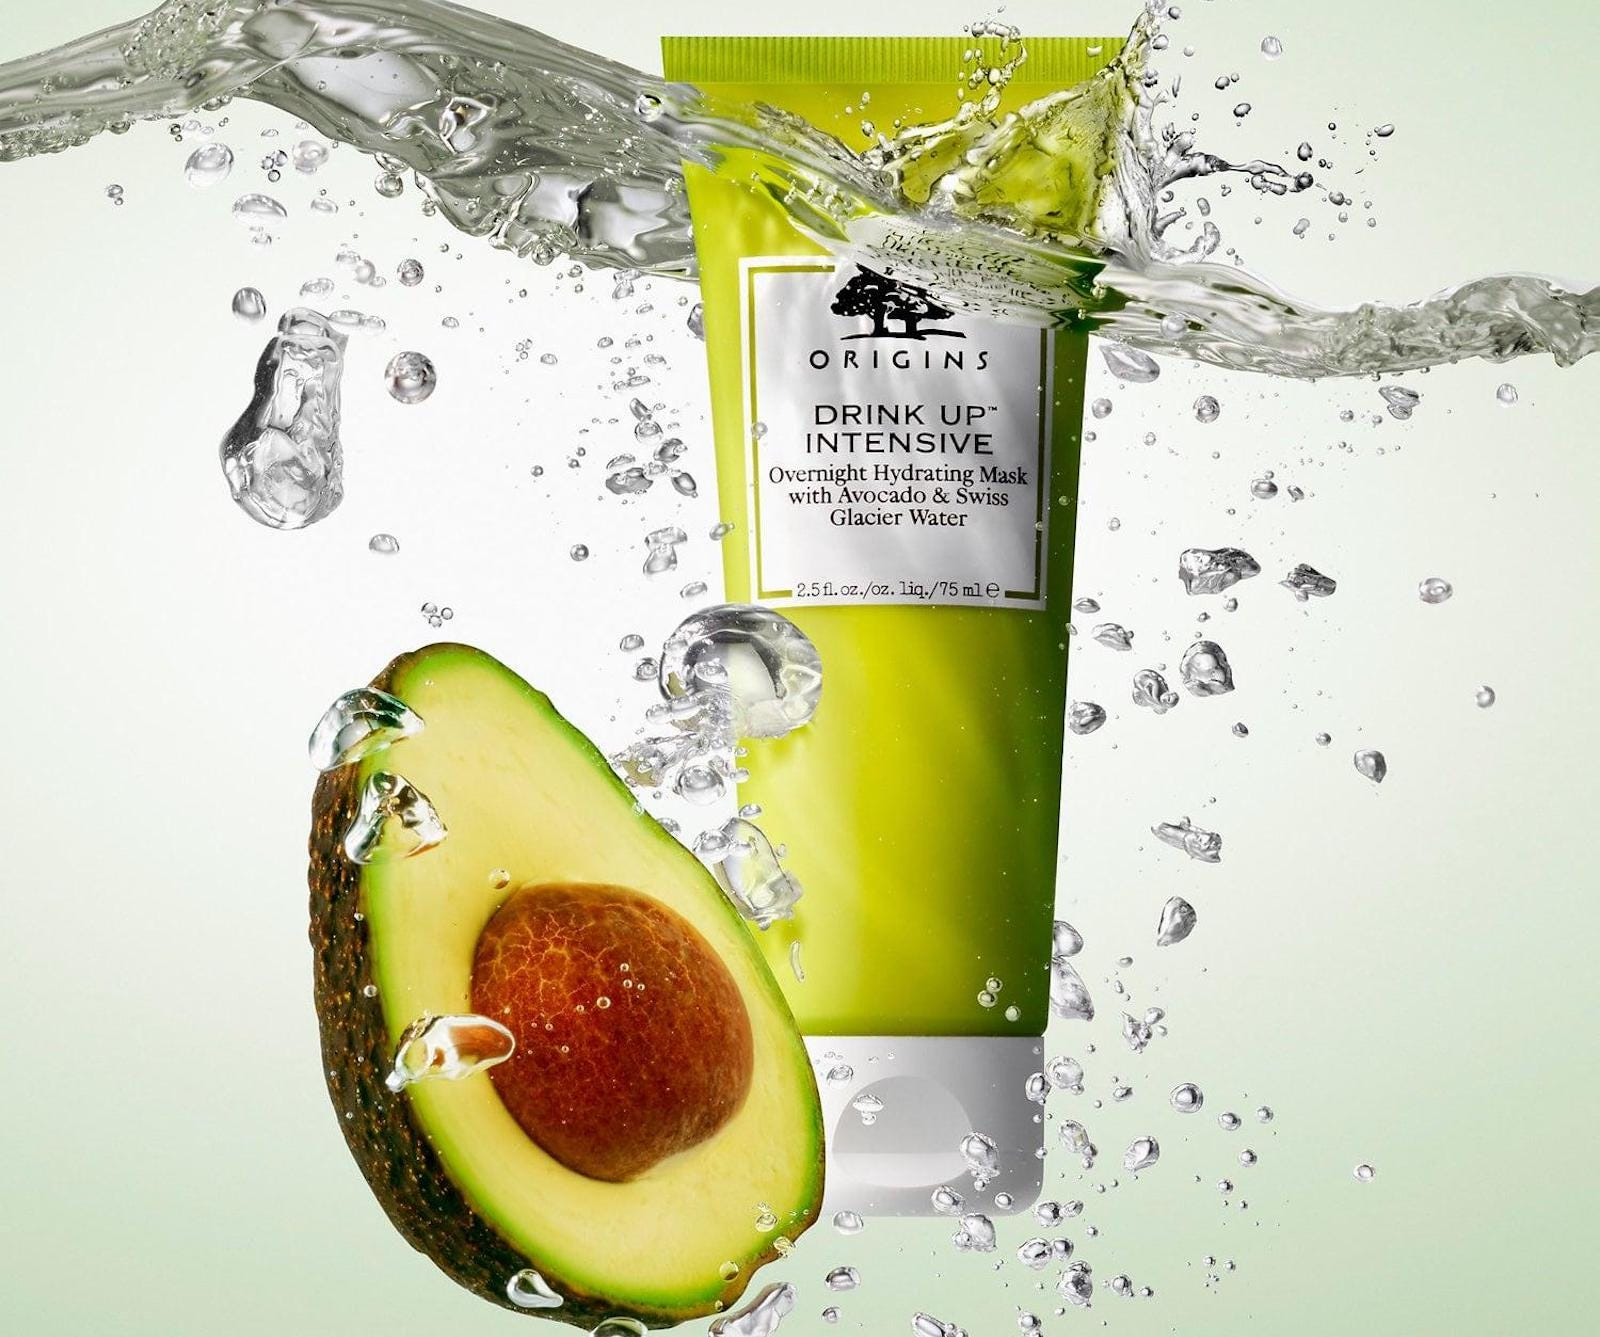 A green tube of mask cream, next to an avocado half and a splash of water